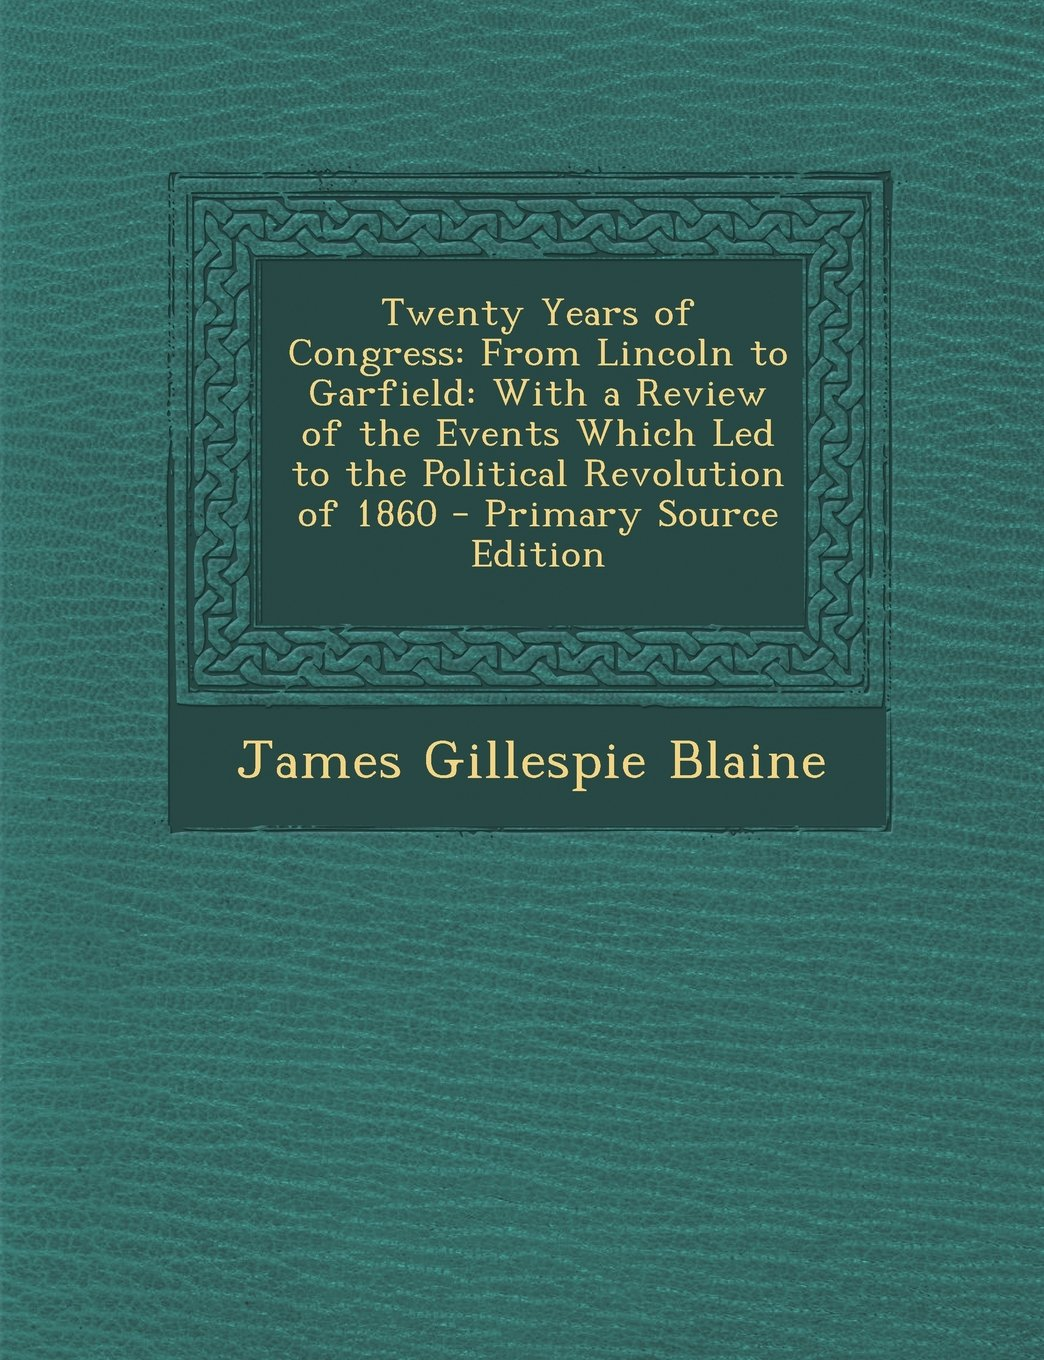 Read Online Twenty Years of Congress: From Lincoln to Garfield: With a Review of the Events Which Led to the Political Revolution of 1860 - Primary Source E pdf epub